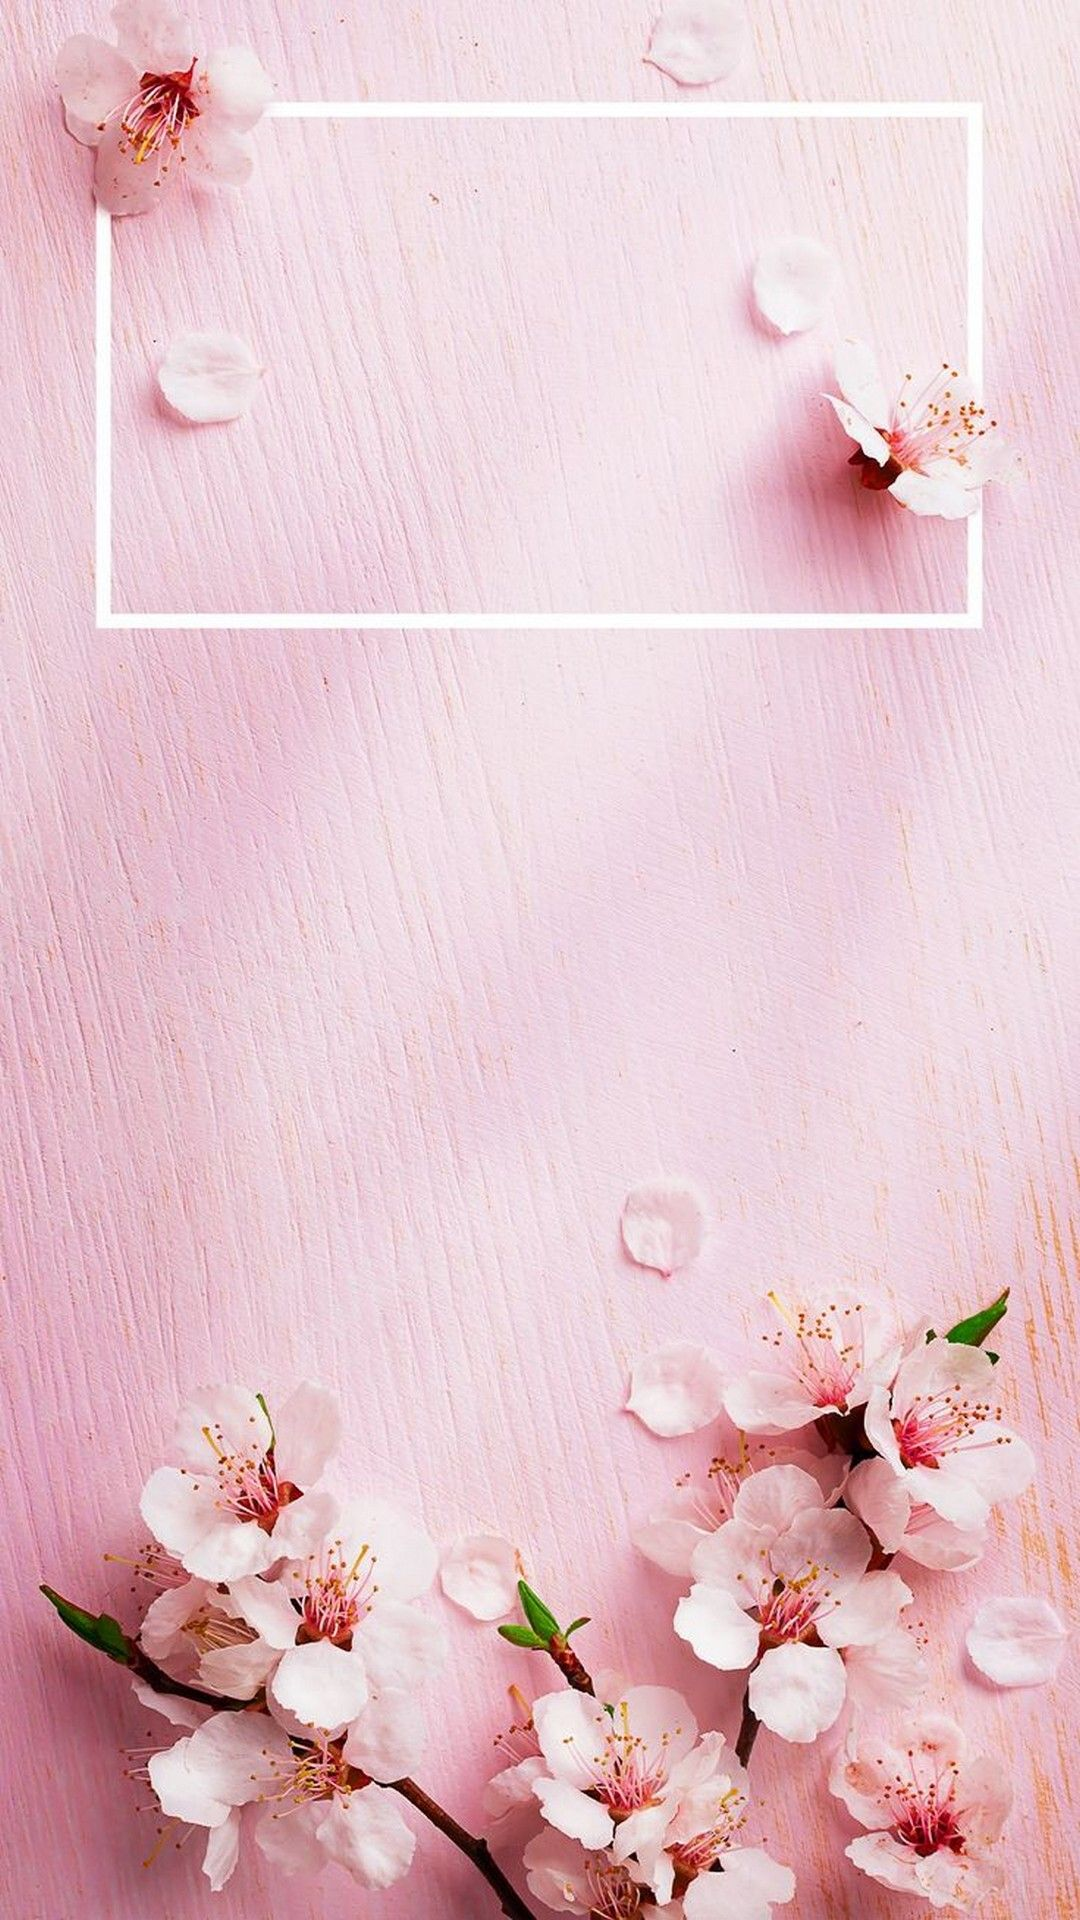 Home Screen Wallpapers Iphone Marble 51 Ideas Android Wallpaper Rose Rose Gold Wallpaper Gold Wallpaper Background